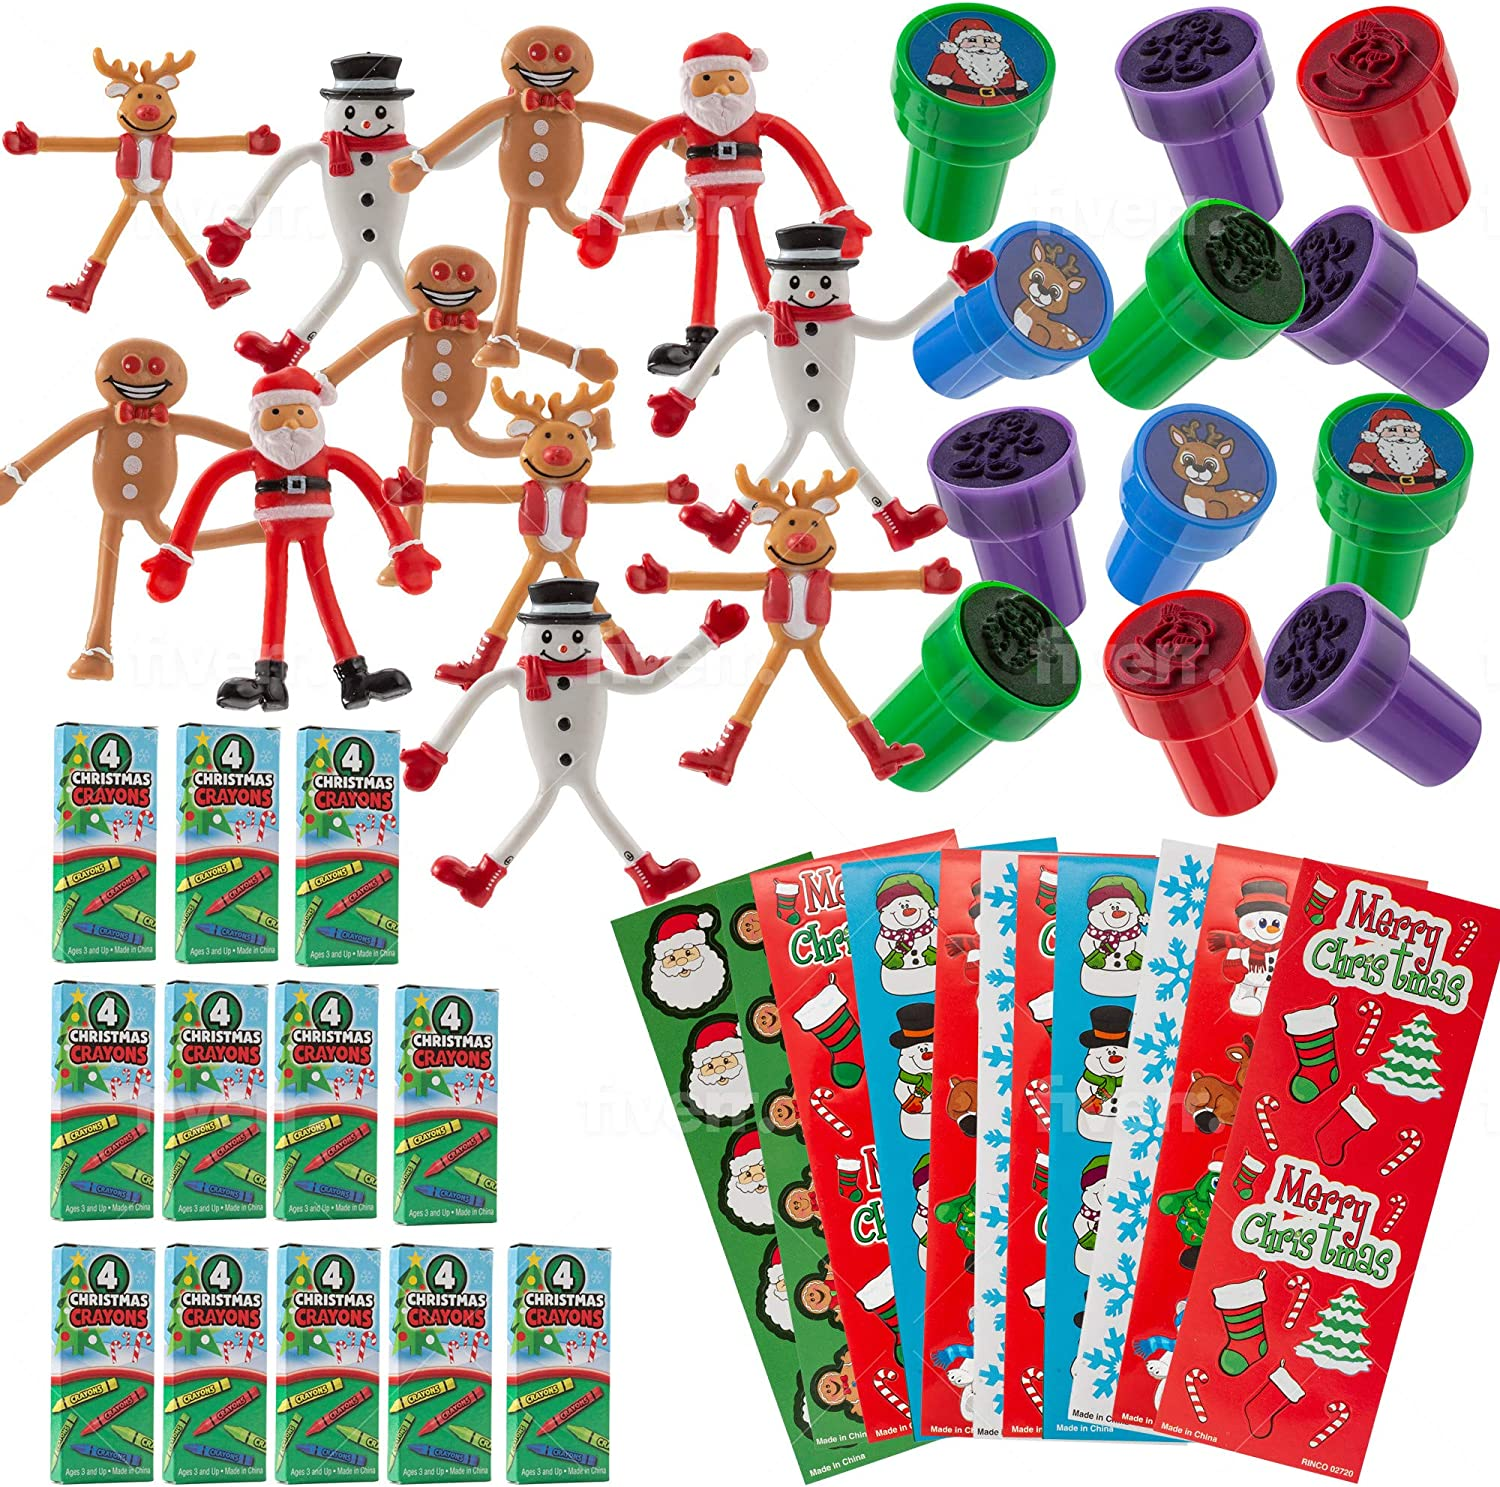 FAVONIR Christmas Party Favor Stuffers 84 Pcs Goody Bag Assortment Bendable Characters, Self-Ink Stampers, Crayons, Colorful Holiday Theme Sticker Assortment Kids Activity Toys And Fun Reward Prizes